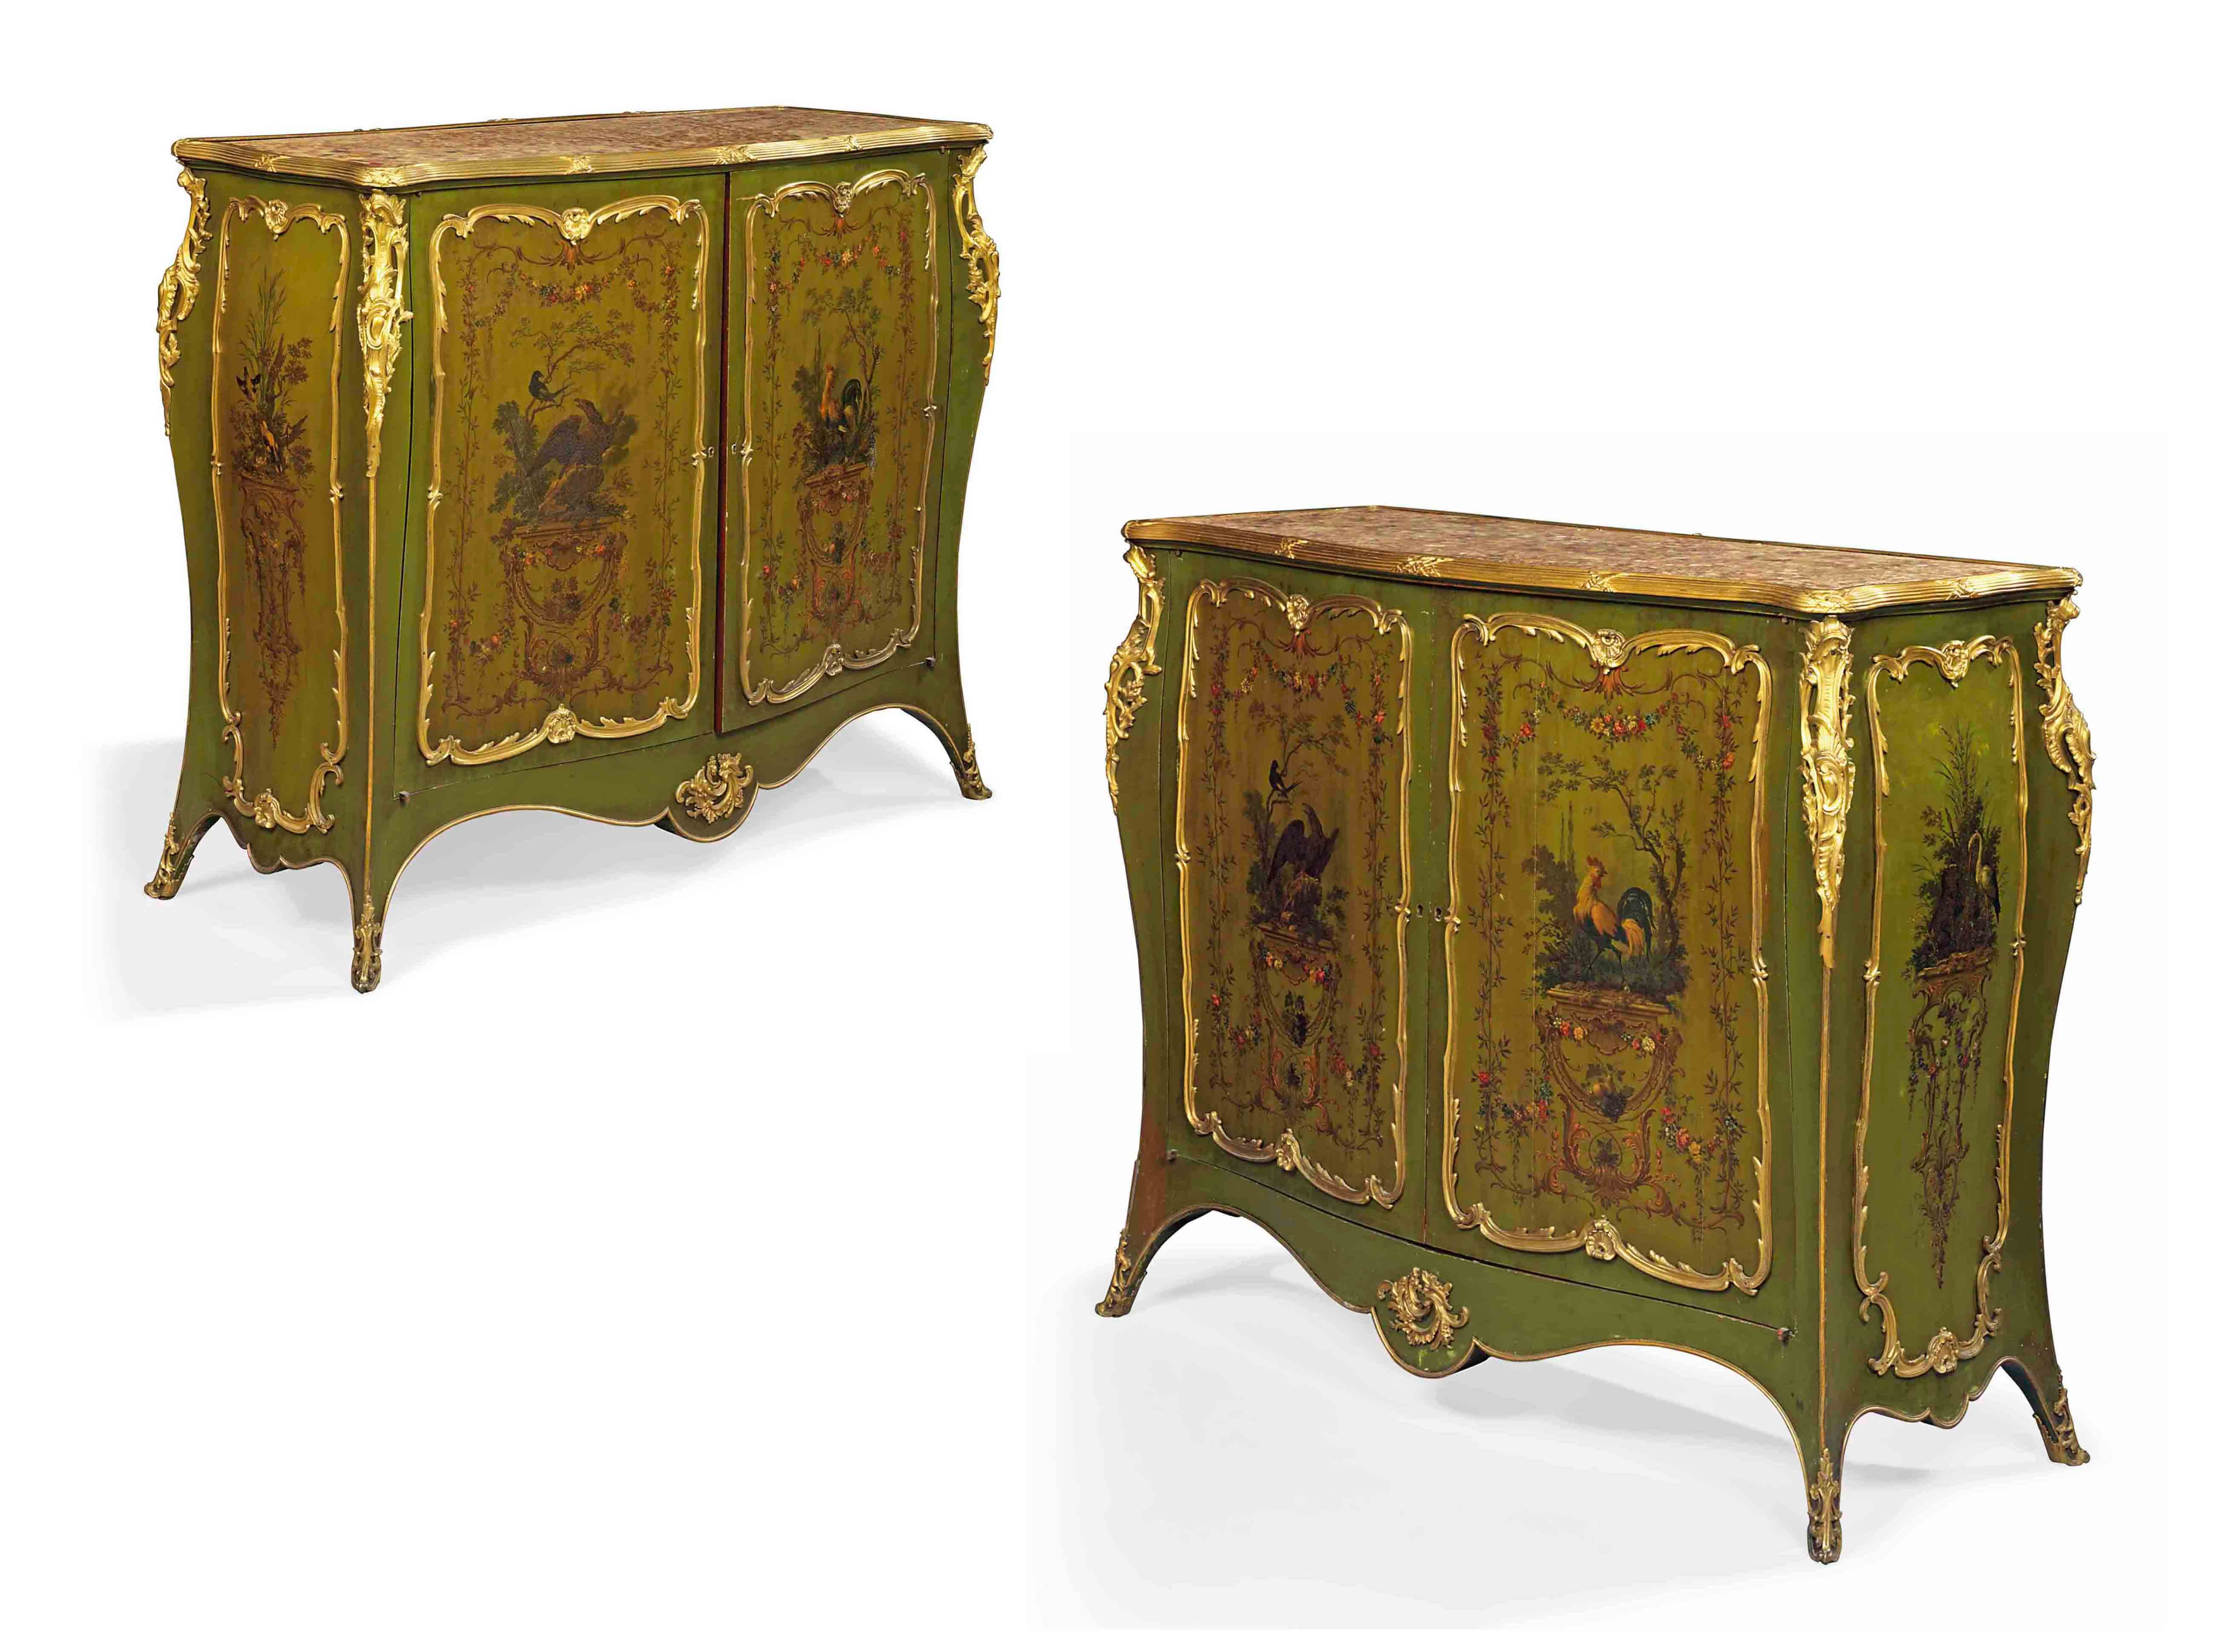 A PAIR OF FRENCH ORMOLU-MOUNTED GREEN LACQUERED MEUBLES D'APPUI